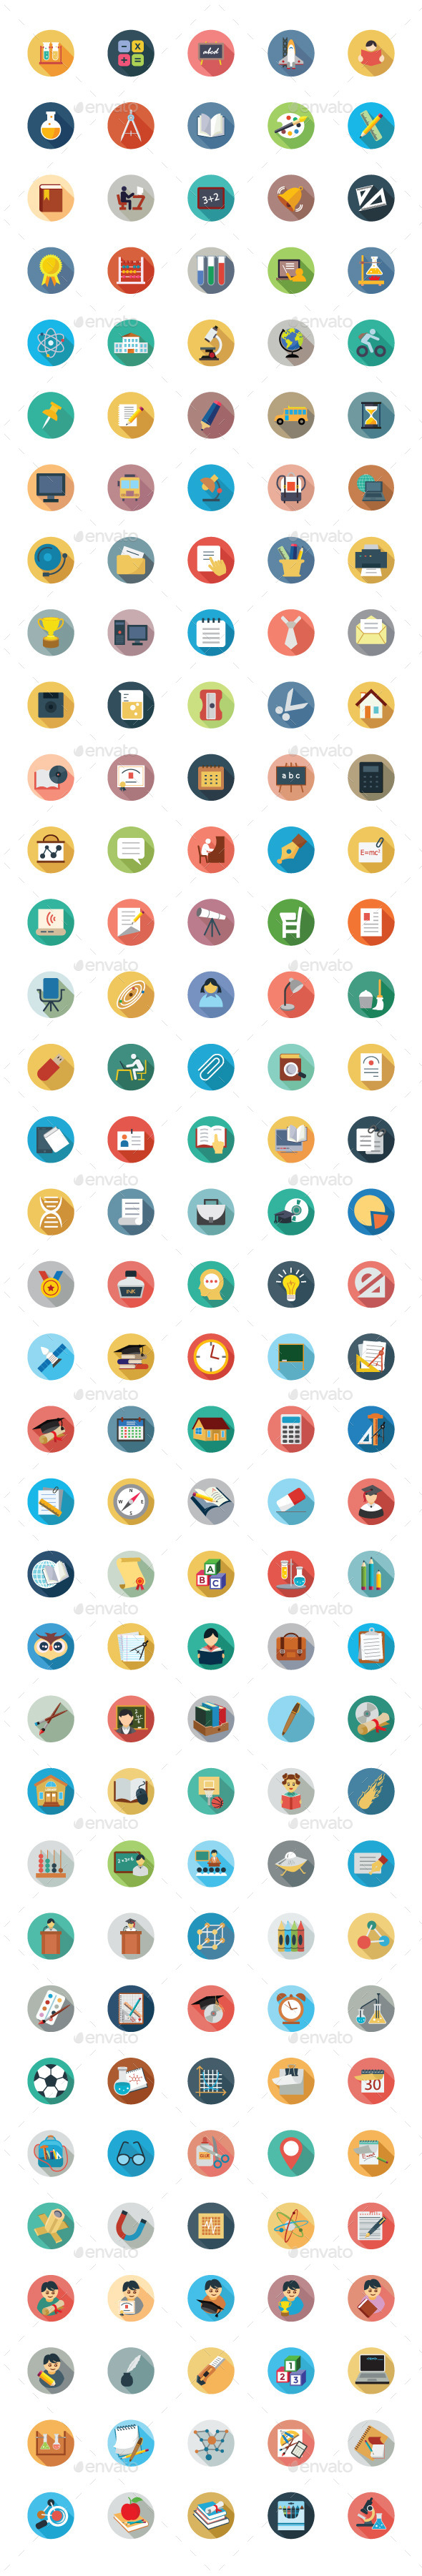 175 Education Vector Icons - Icons